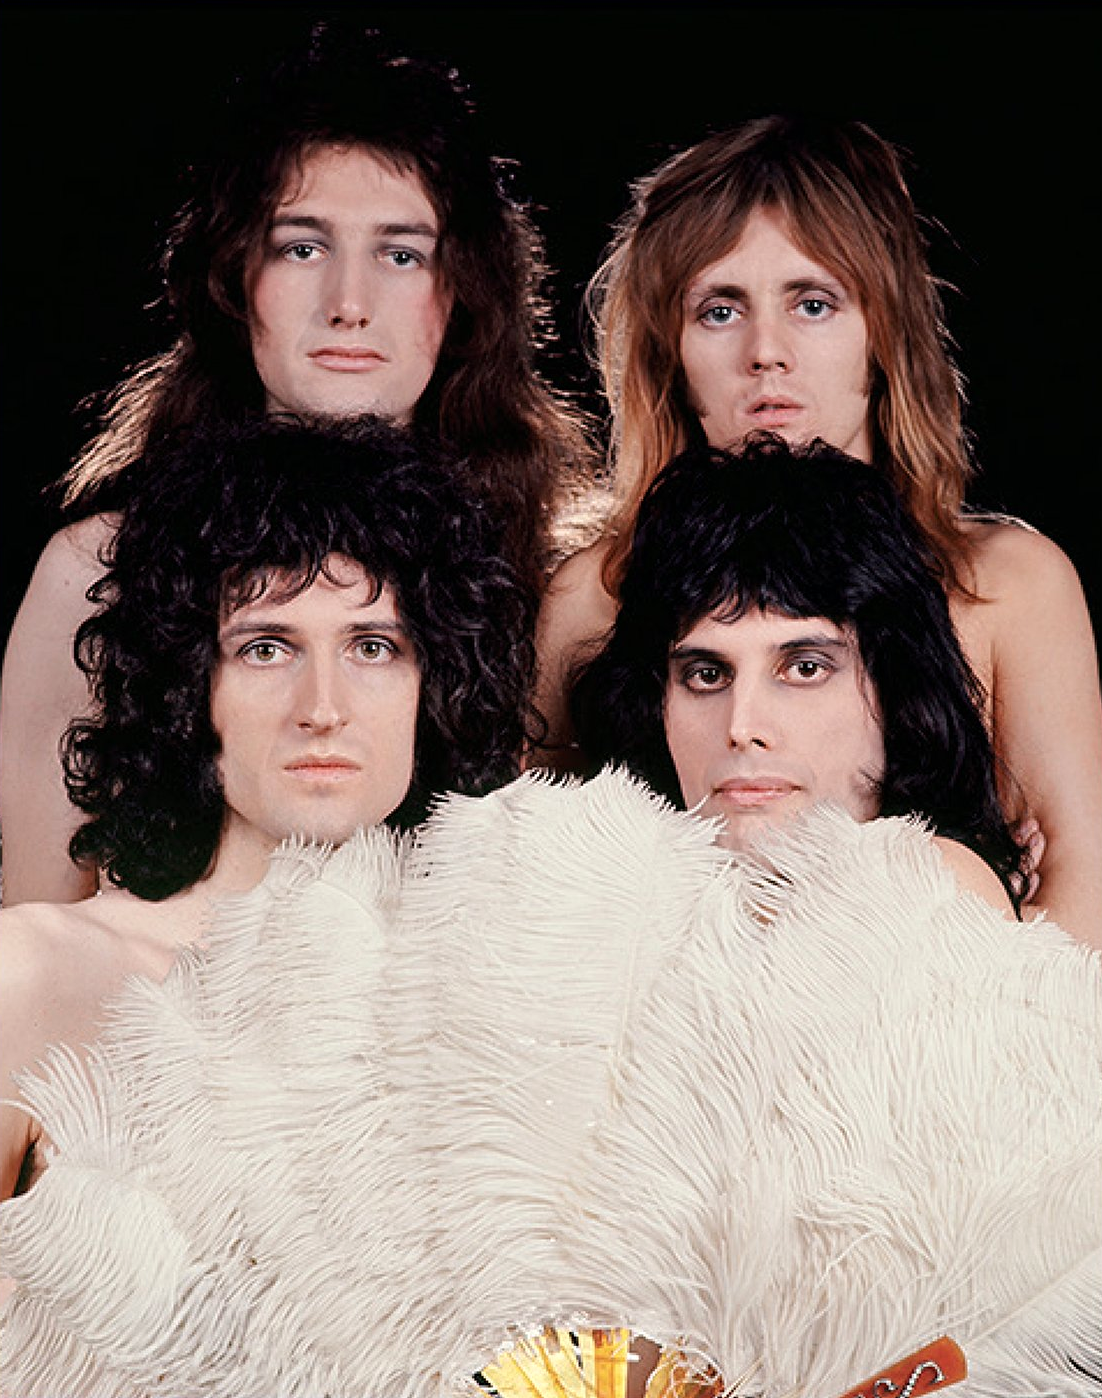 """i-will-be-a-legend: """"Queen by Mick Rock, 1973. """""""